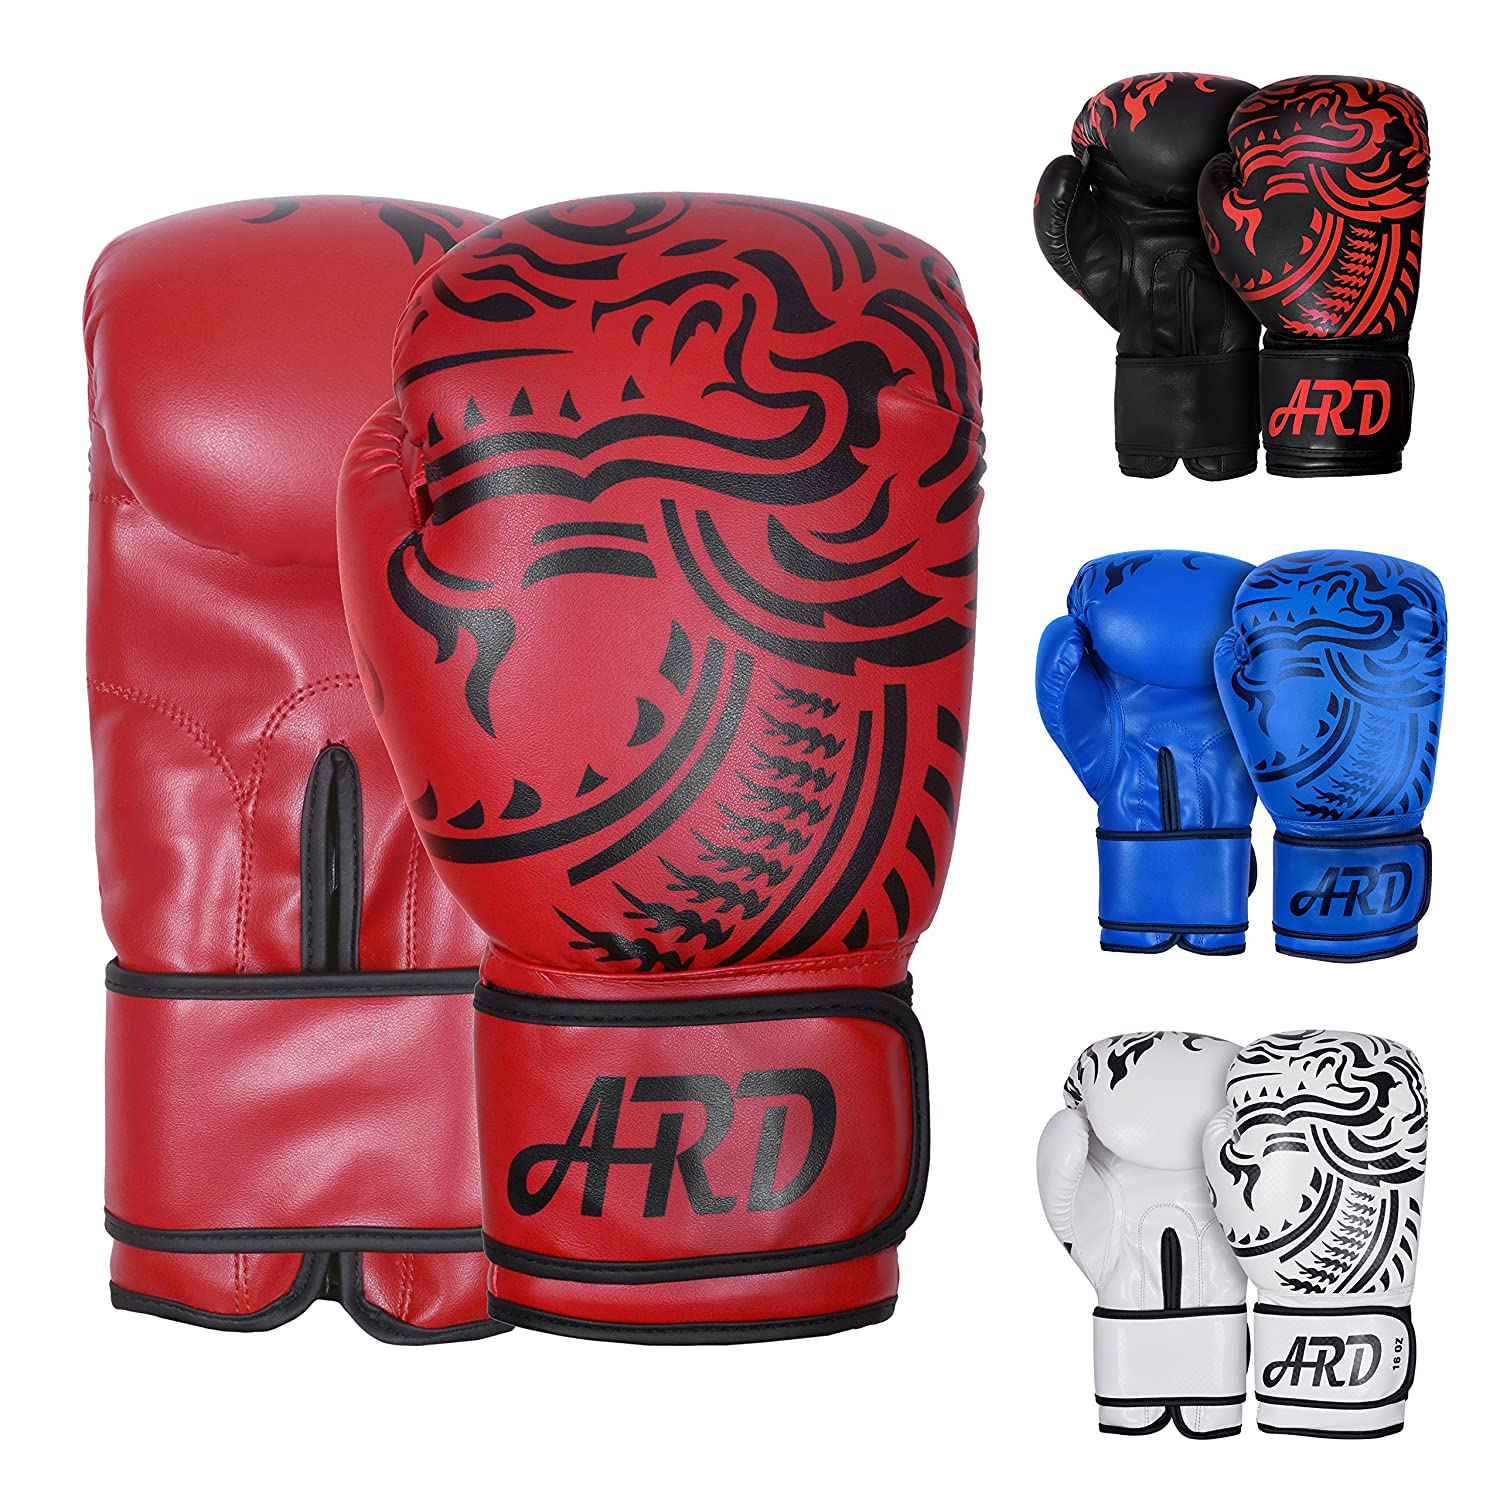 ARD Boxing Gloves Art Leather Punch Training Sparring Kickboxing MMA Fighting Tiger Model